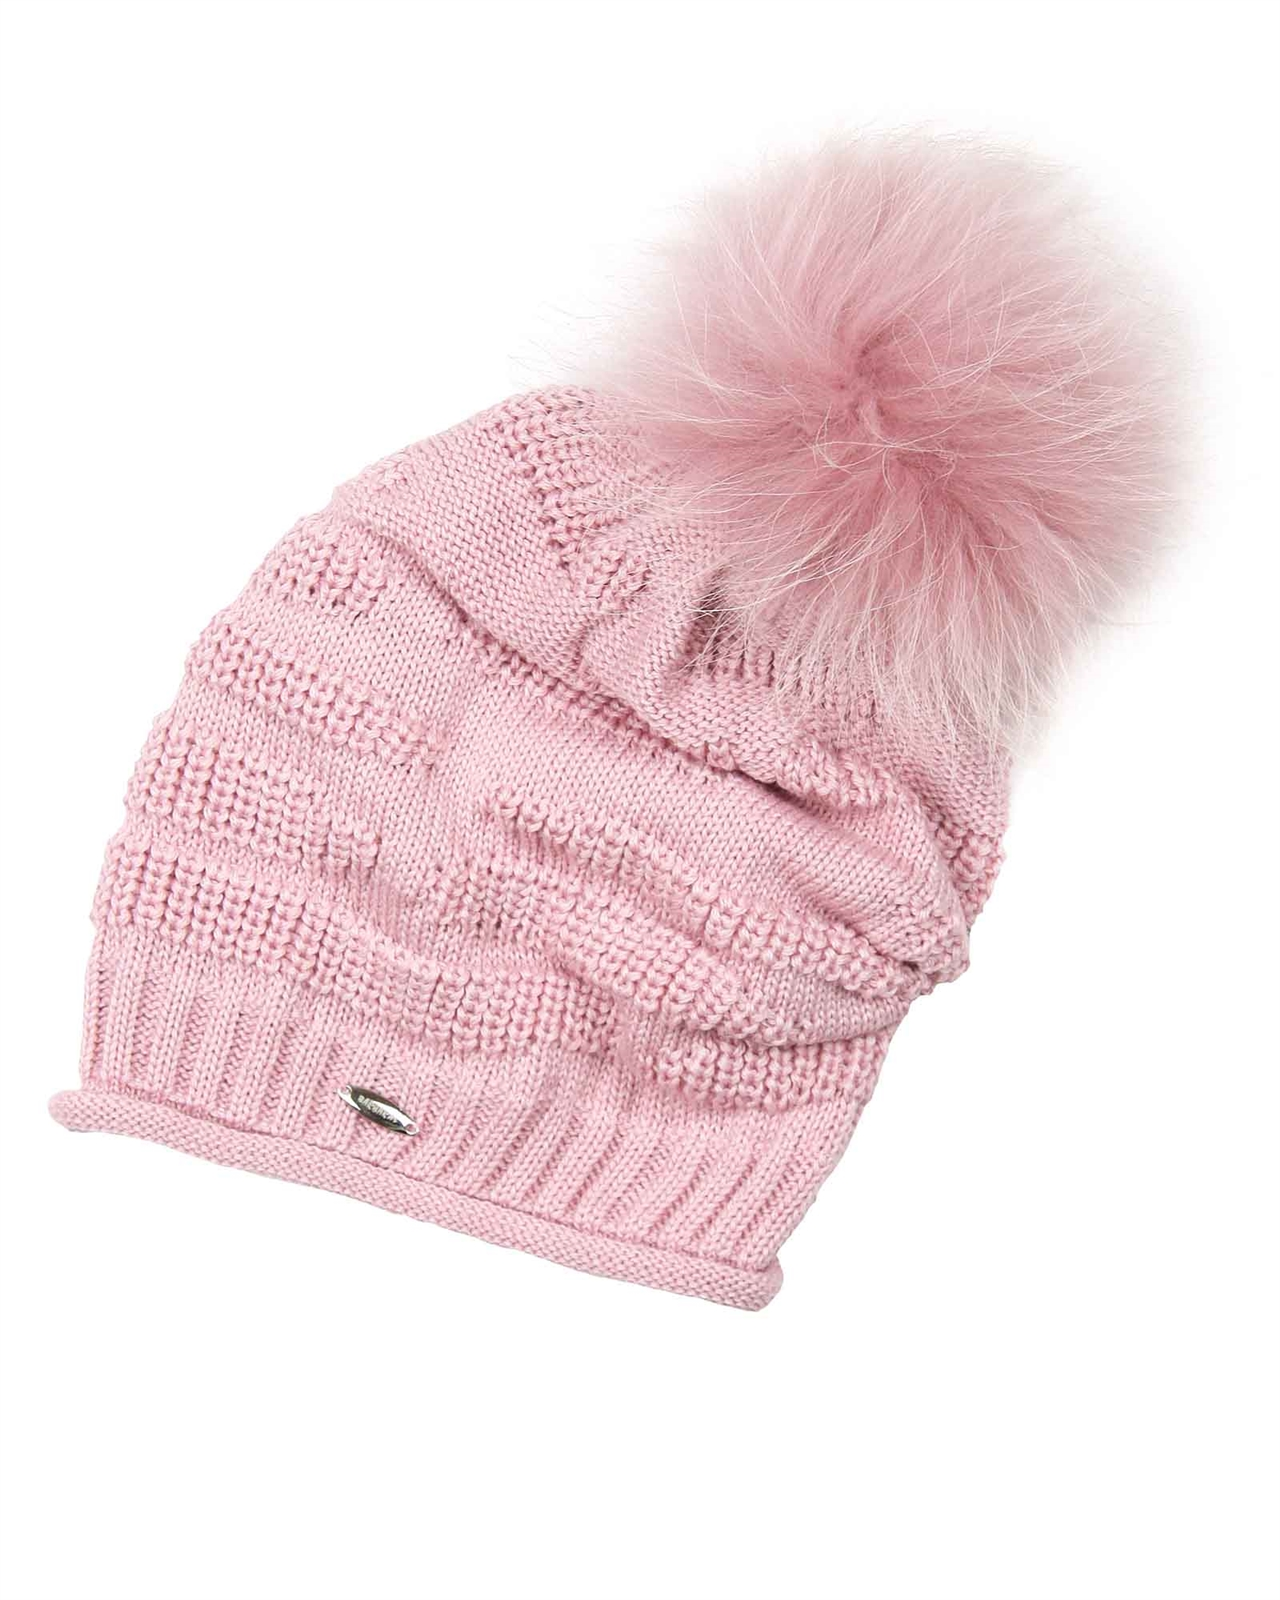 0f3c04af BARBARAS Girls' Slouchy Beanie Hat in Pink with Racoon Pompom, Sizes 2-12